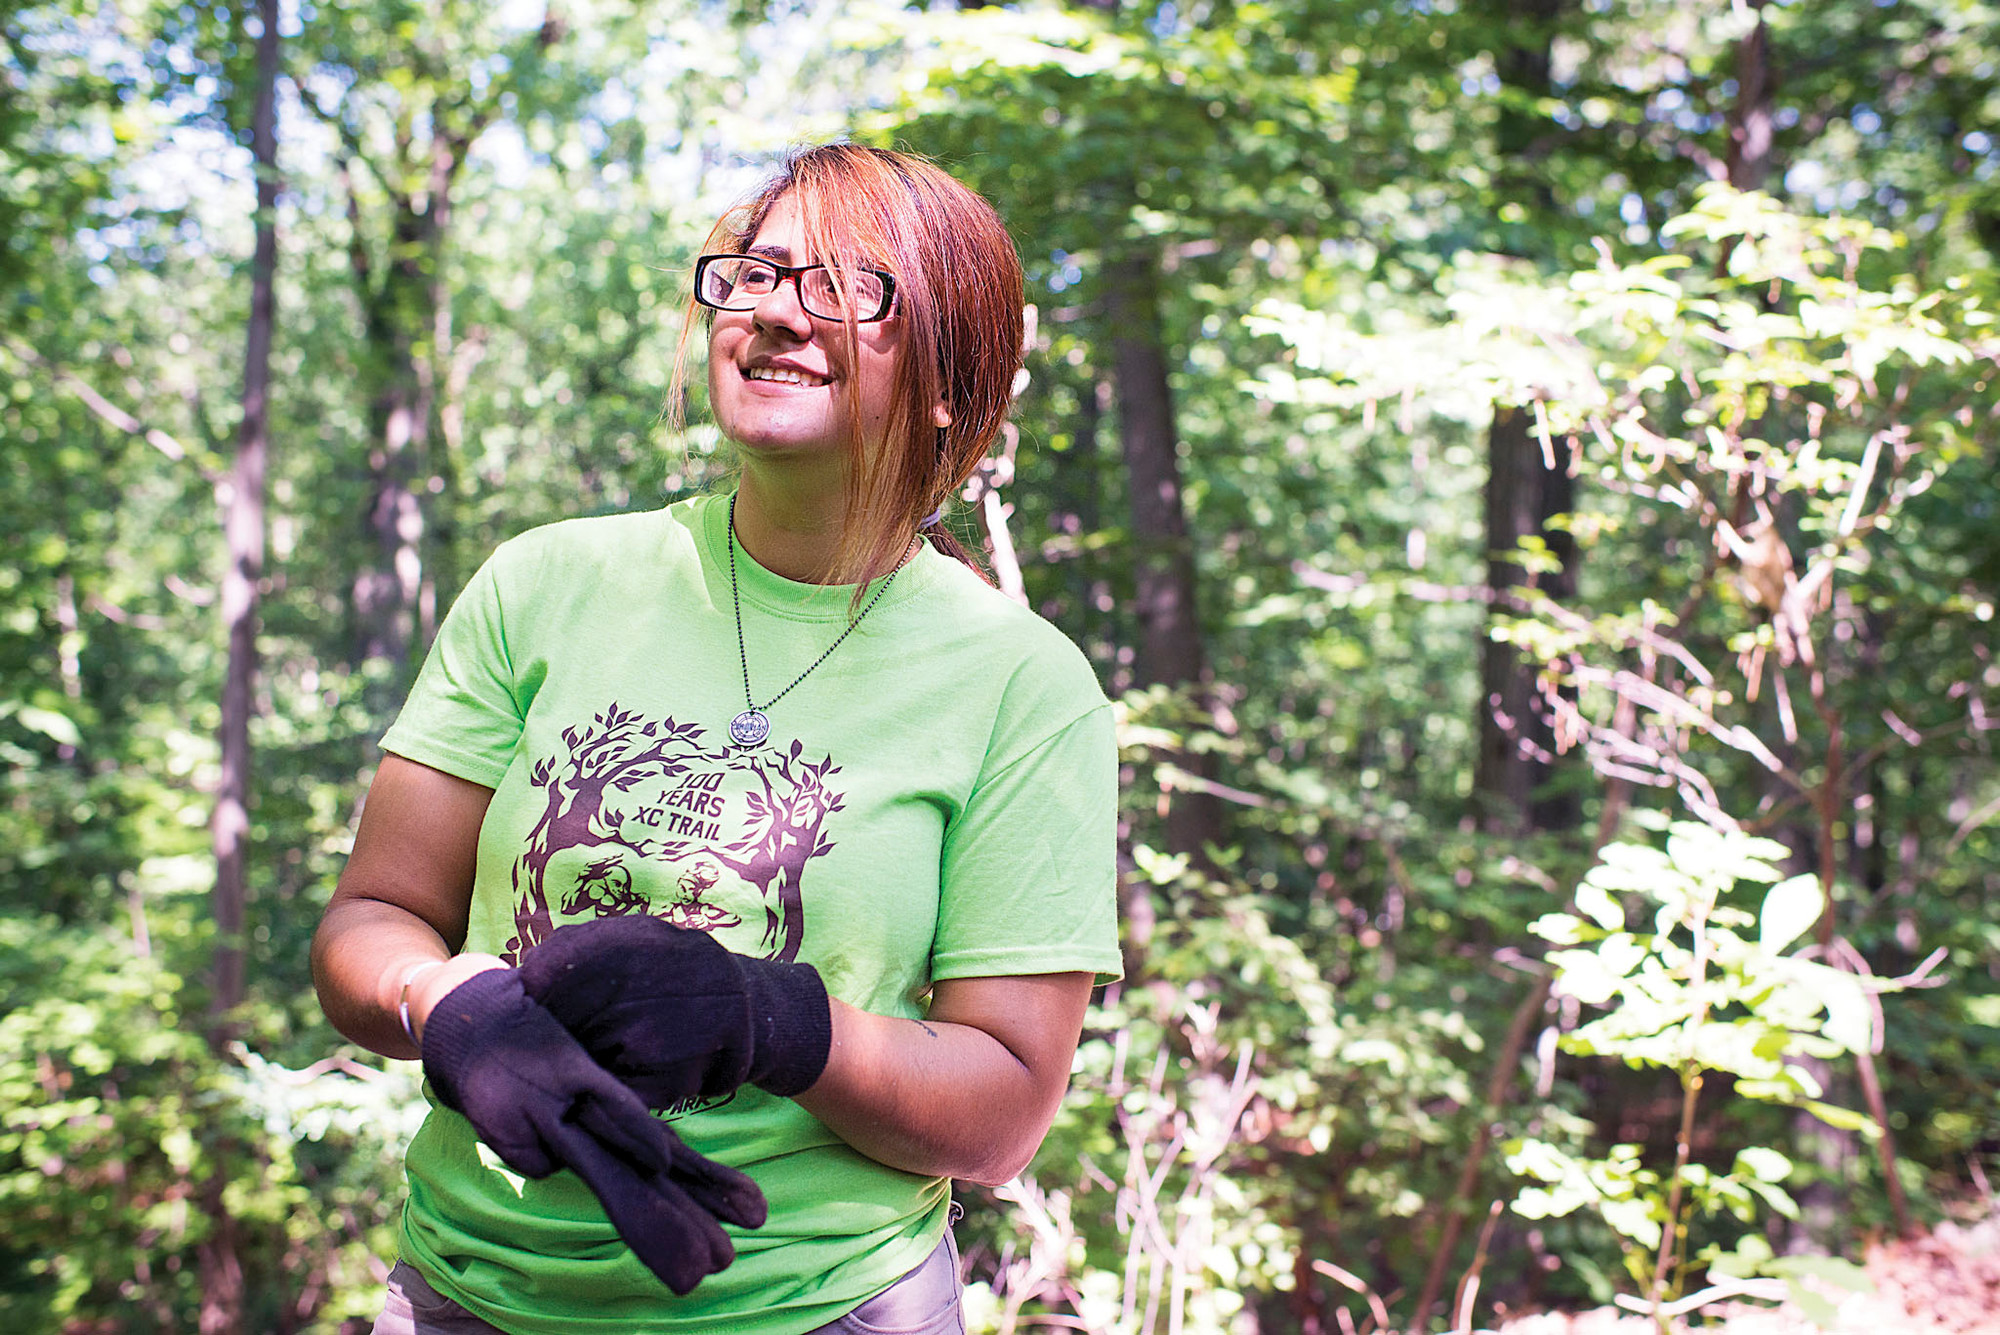 Stacy Granda, 20, a Lehman College student who worked to clear overgrown trails of weeds and mud in Van Cortlandt Park on July 16.